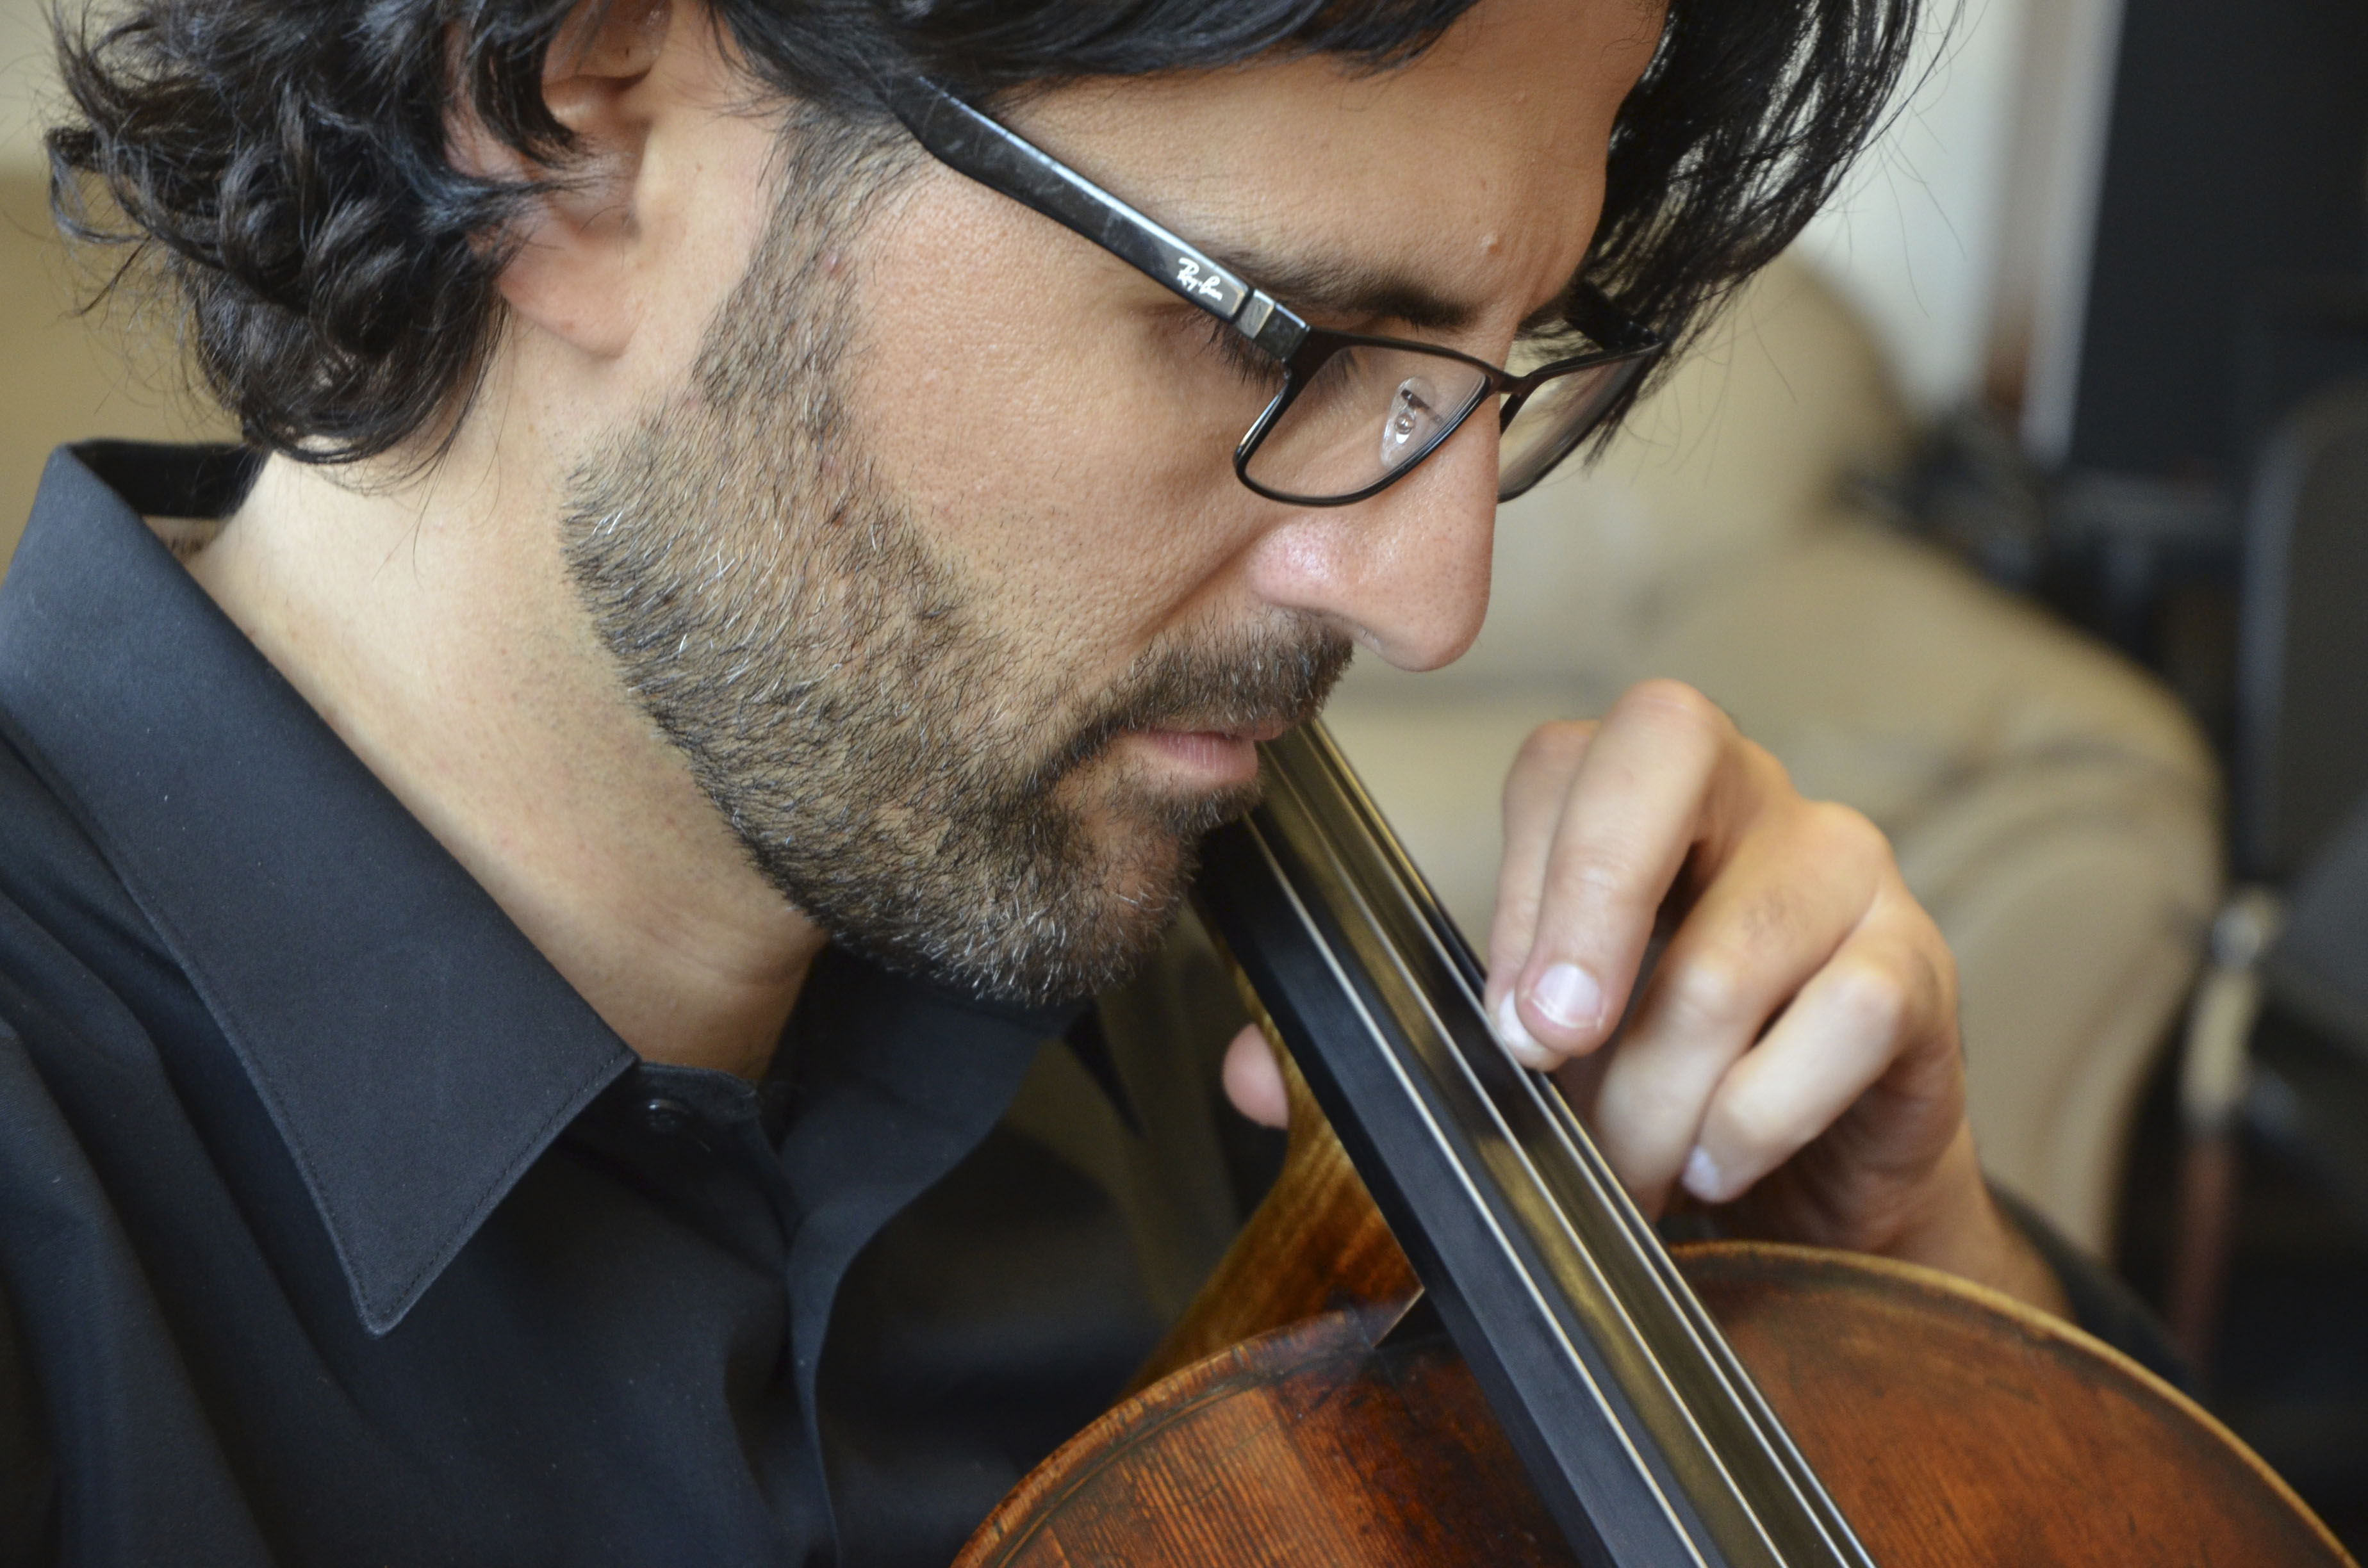 peled plays cello